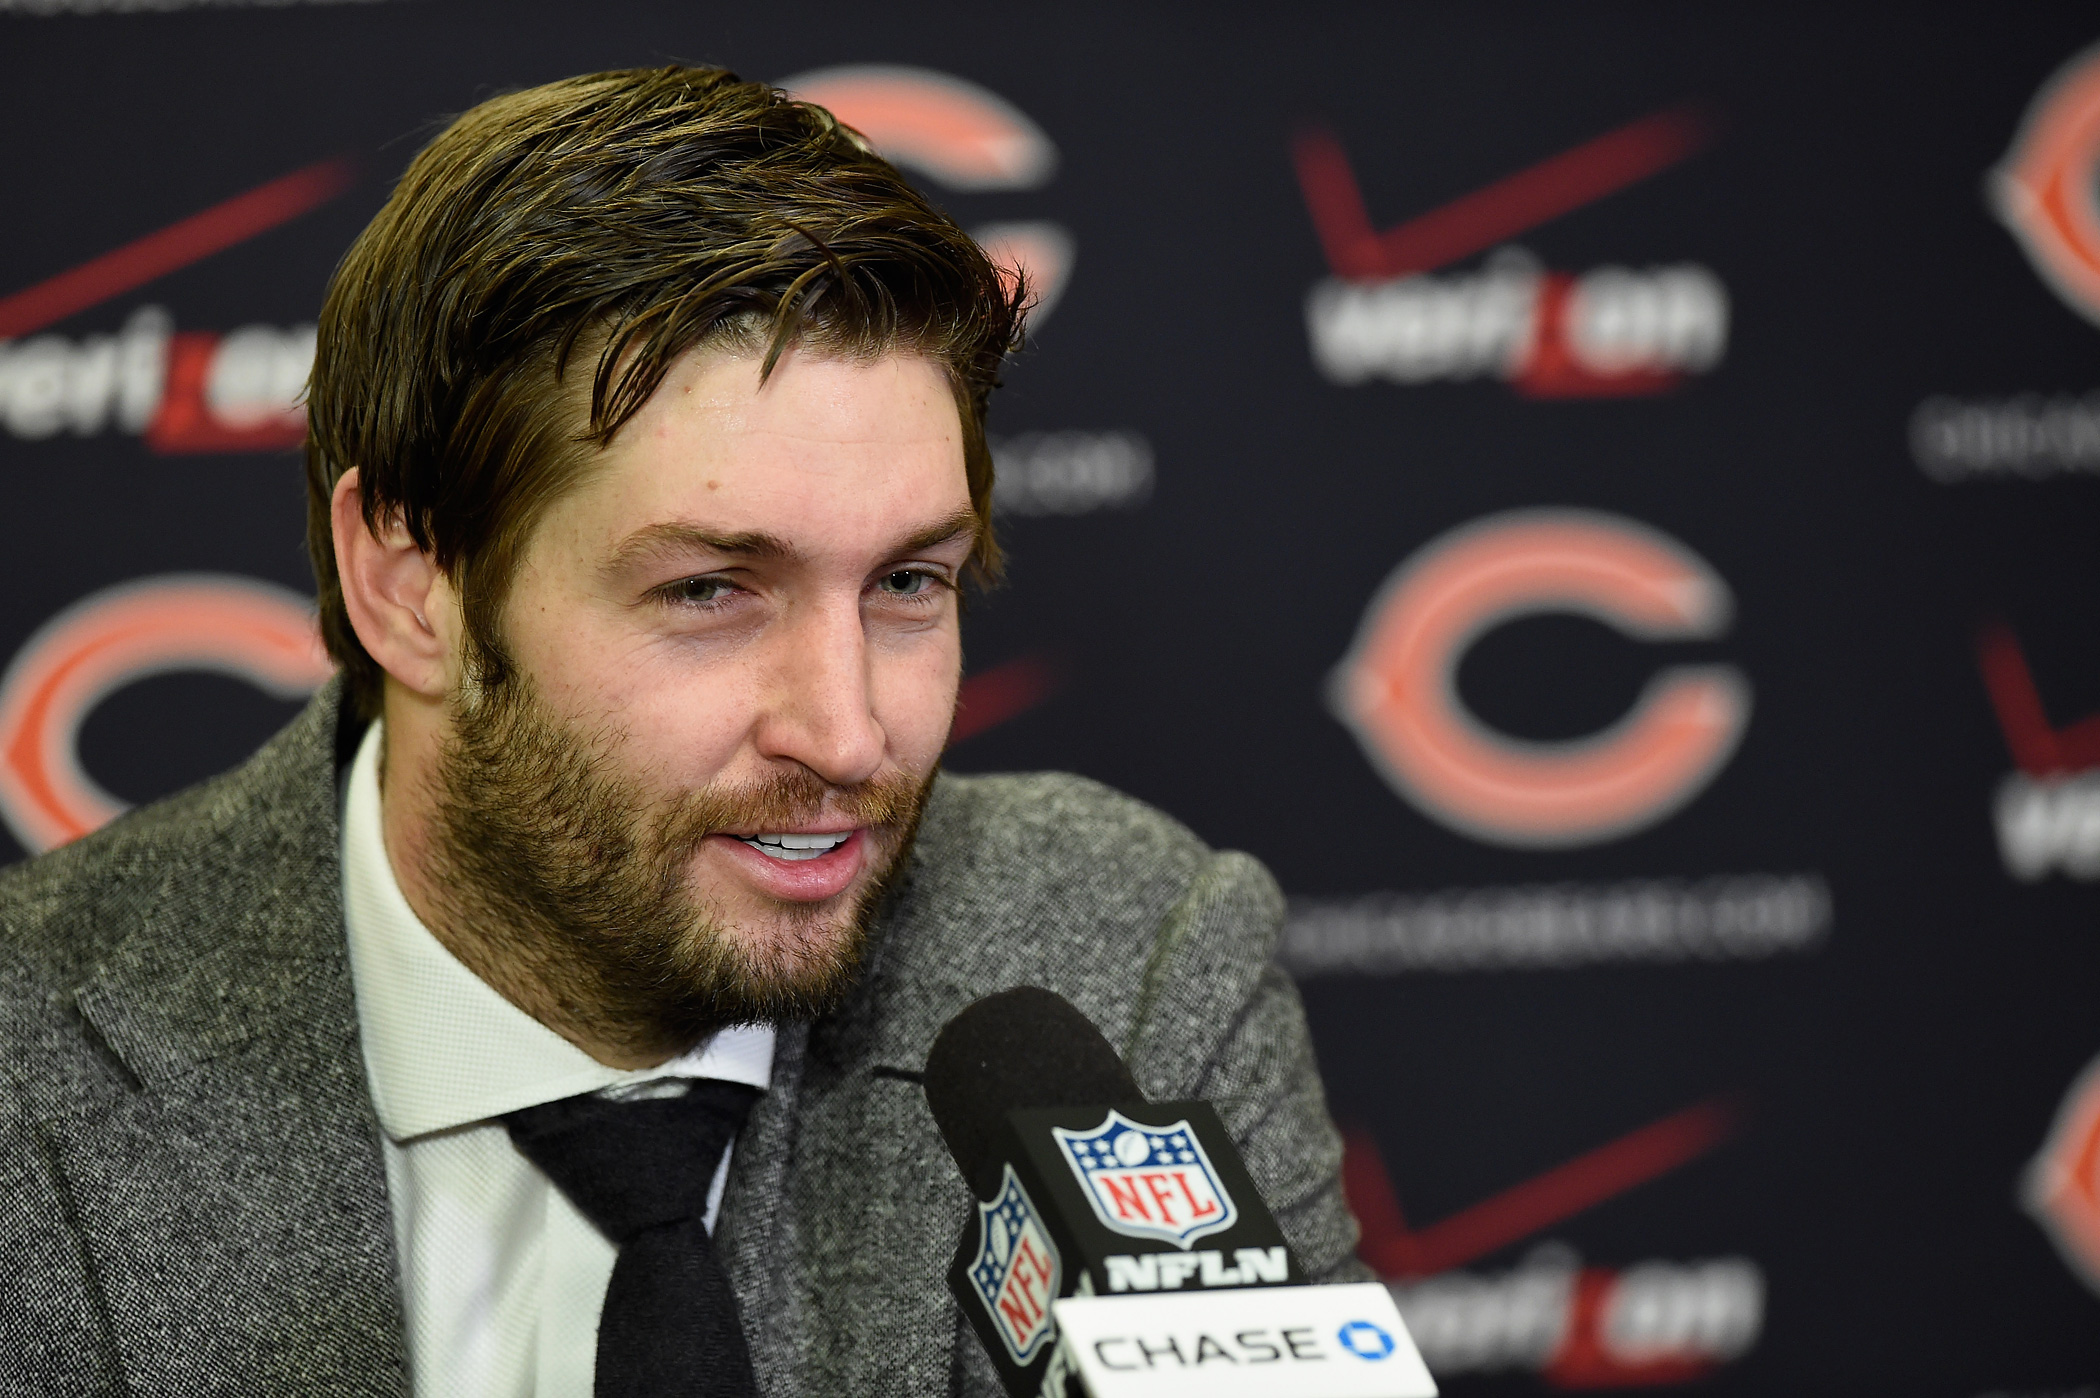 Jay Cutler of the Chicago Bears speaks to the media after the game against the Minnesota Vikings on Dec.28, 2014 at TCF Bank Stadium in Minneapolis, MN.